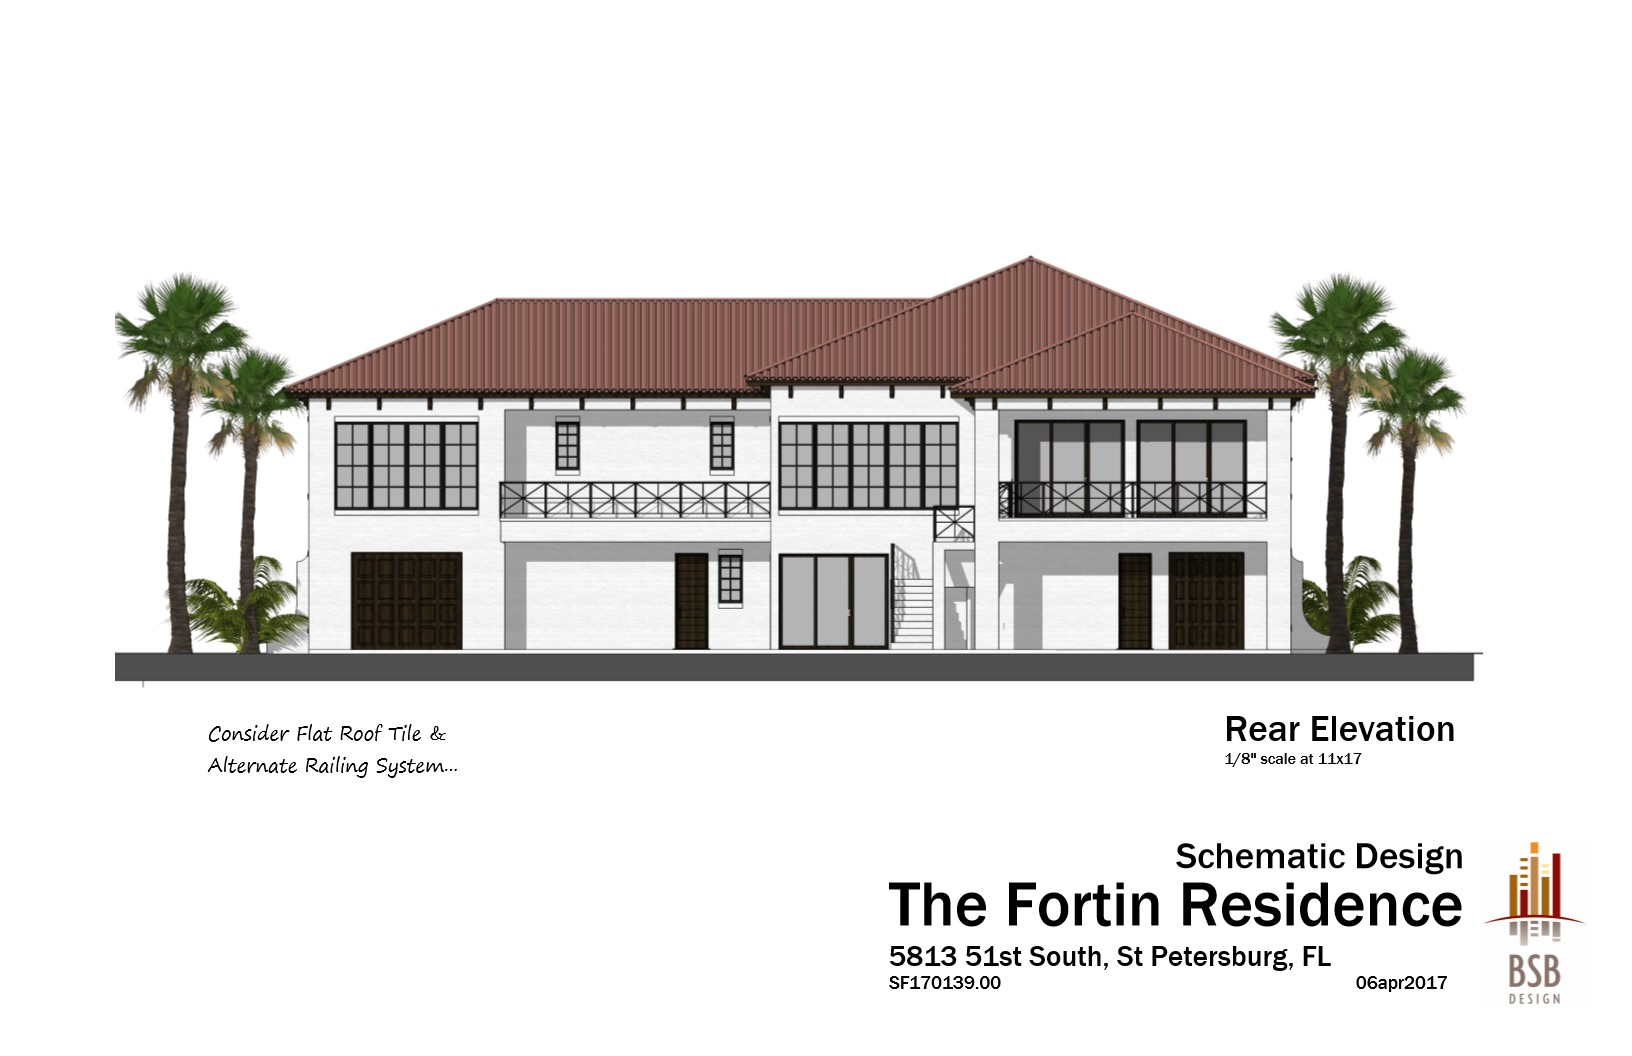 Fortin - Rear Elevation